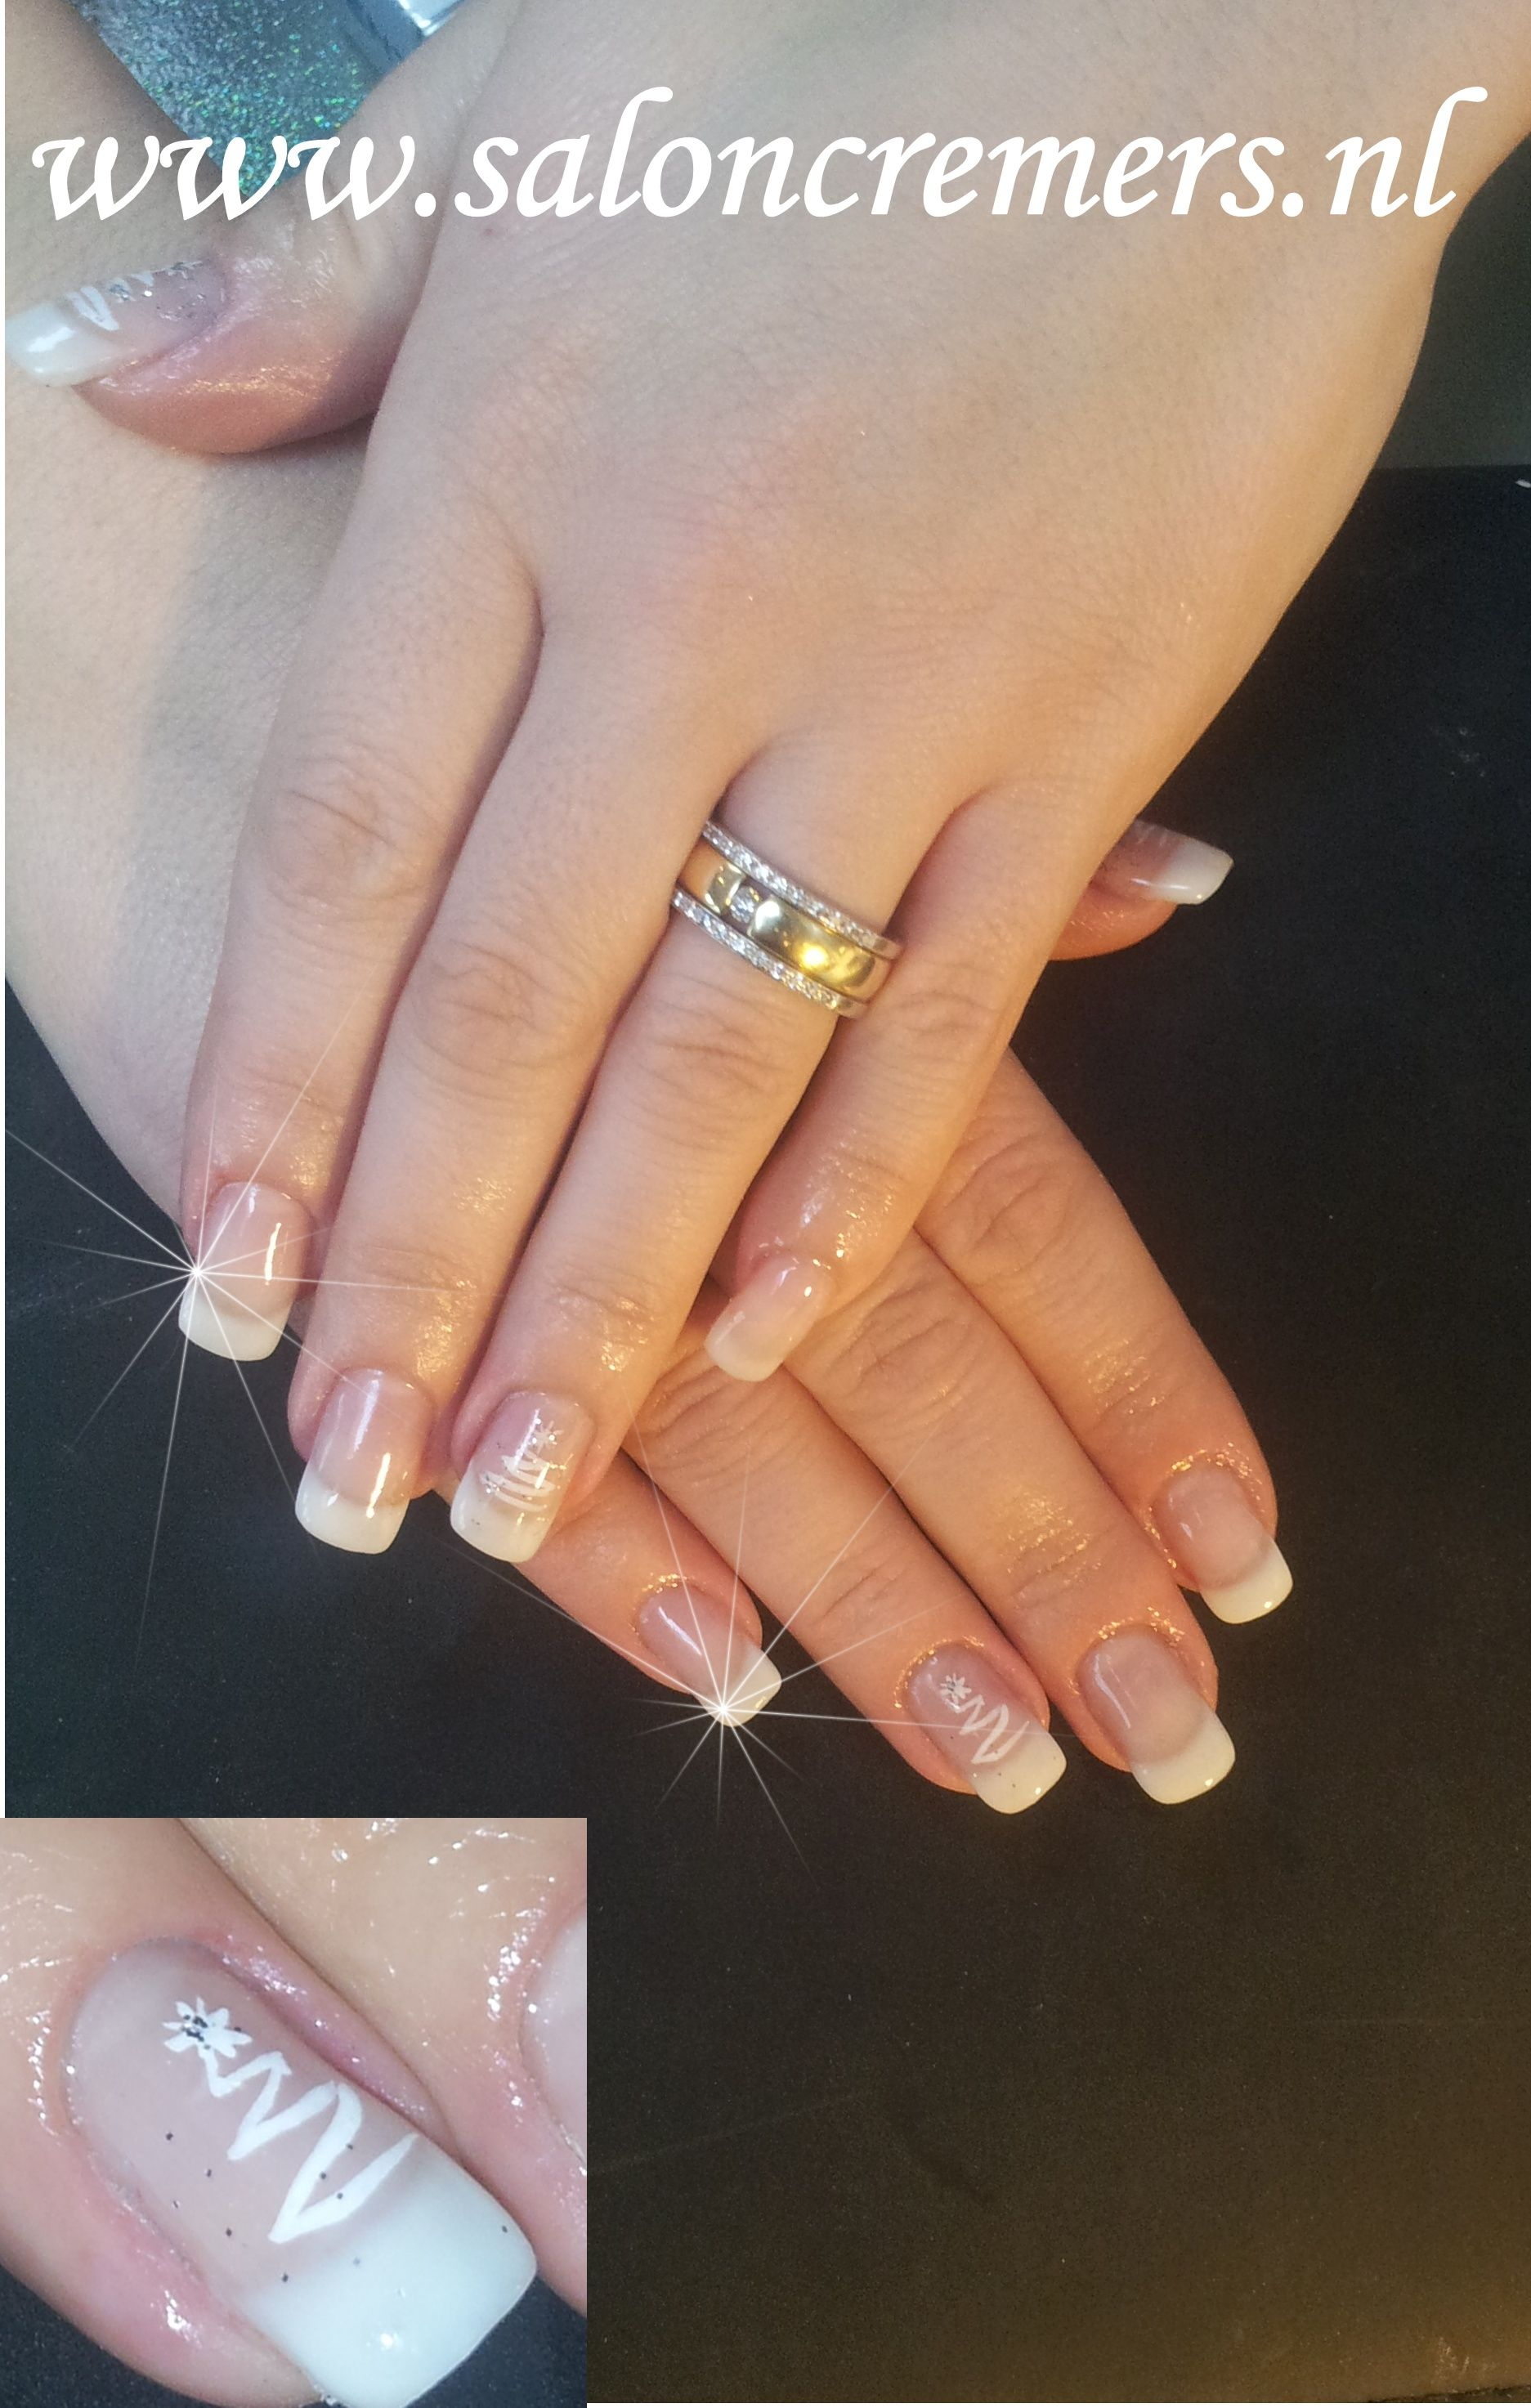 Off White French Manicure With White Christmas Tree Nail Art Nails